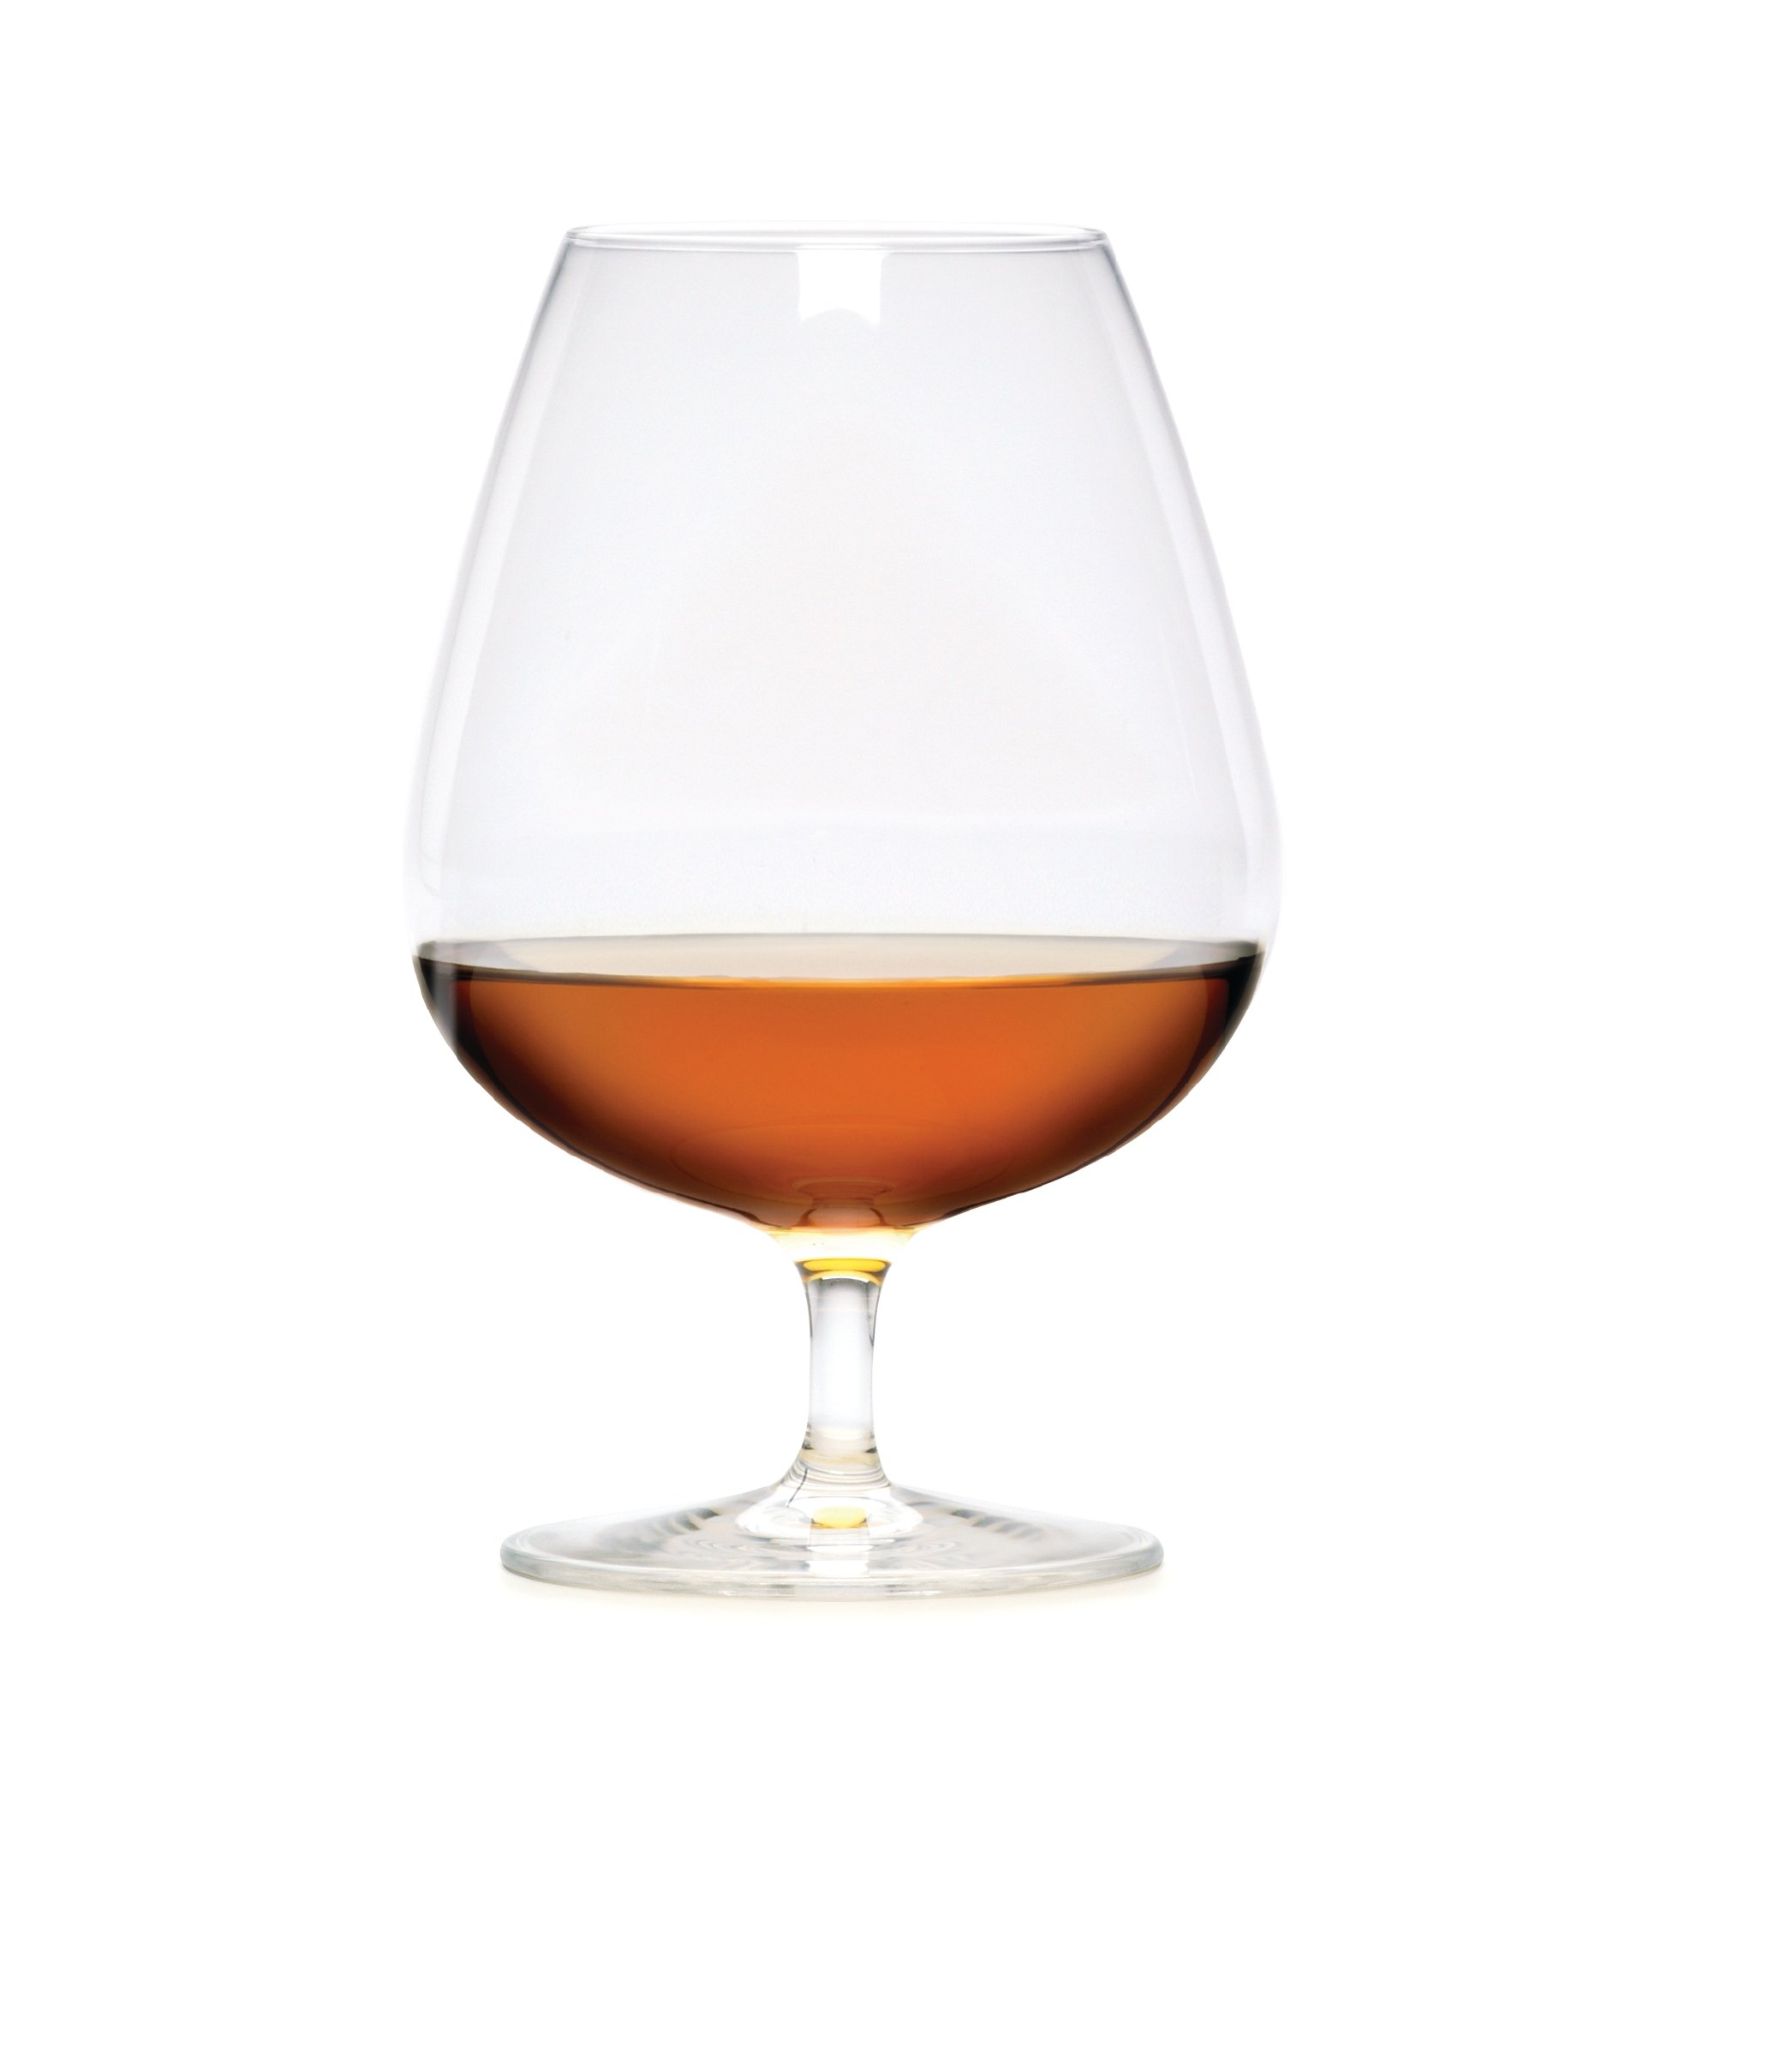 Mikasa Barmaster's Brandy Snifter Glass, 22-Ounce, Set of 4 by Mikasa (Image #1)